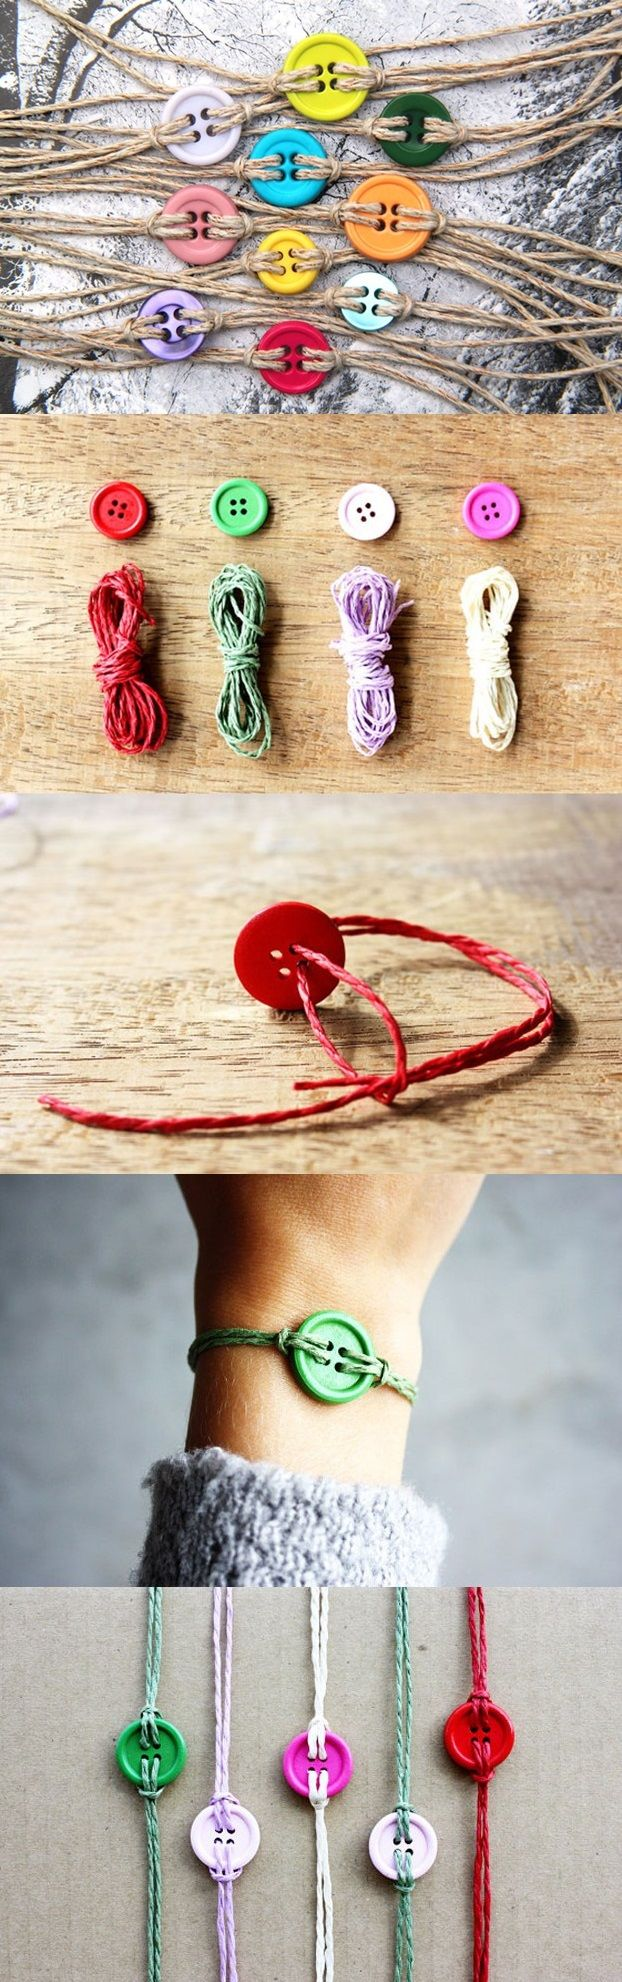 What a great project for a rainy day. Let the grandkids raid your button box and make some colourful bracelets.